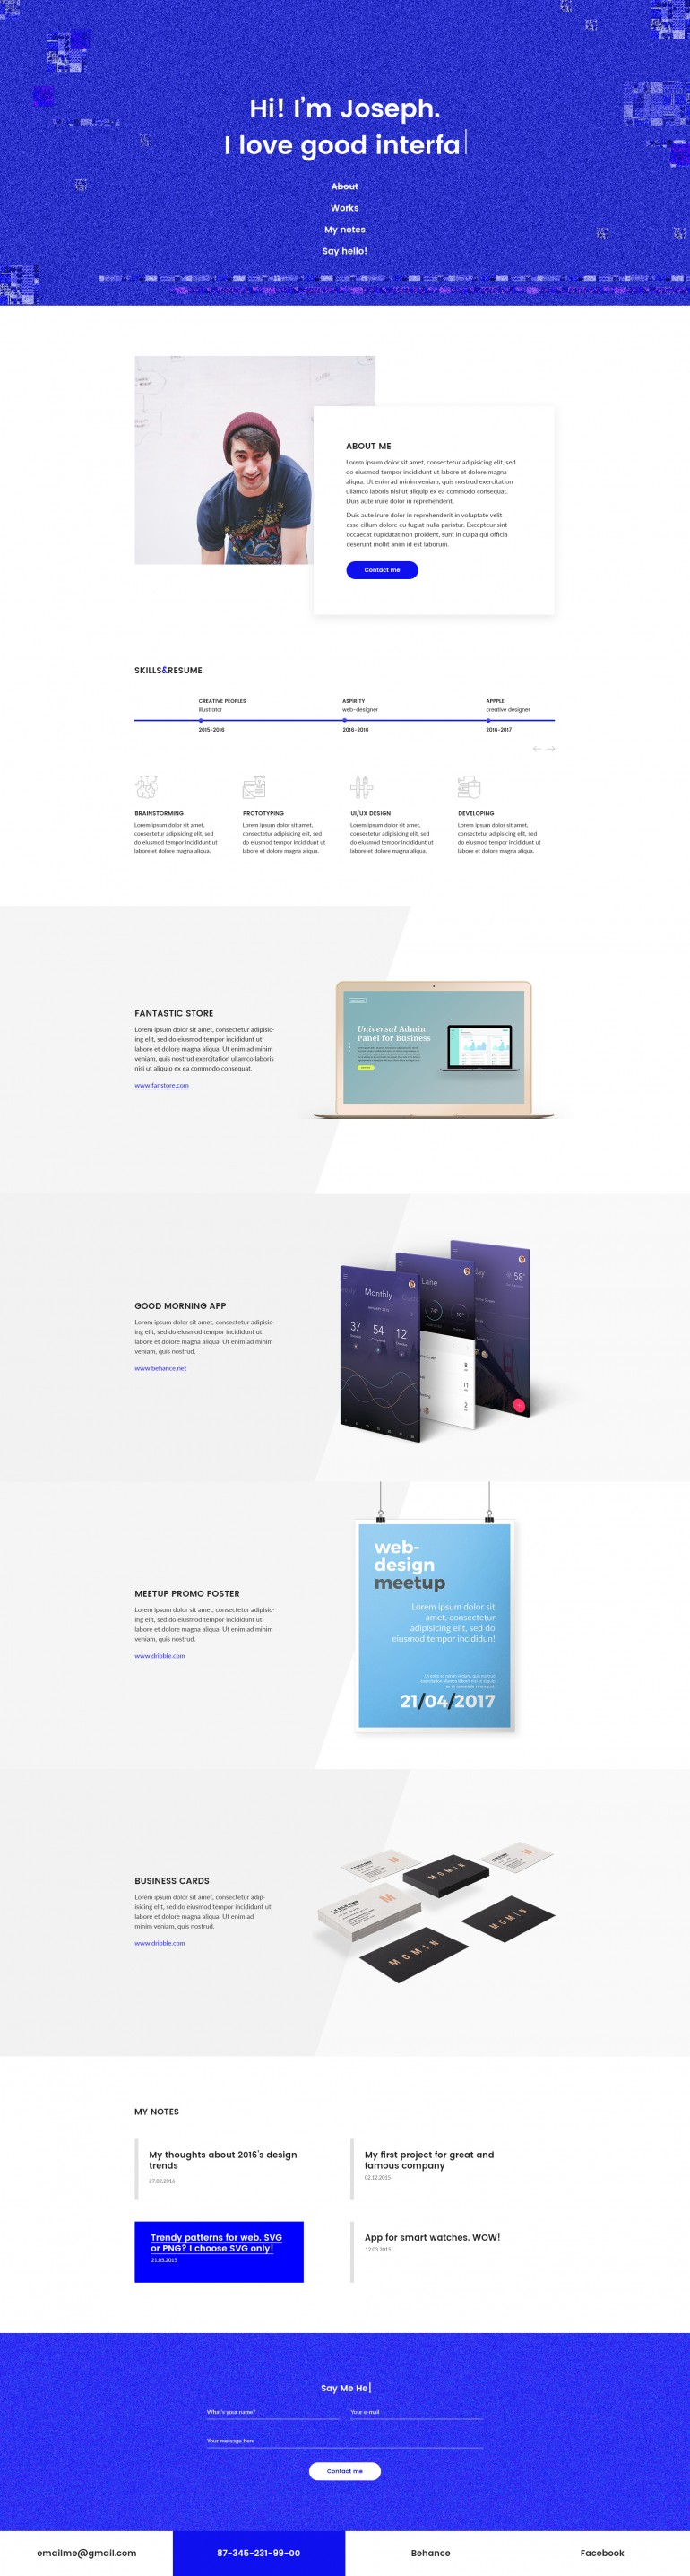 Amazy — Trendy and Creative Personal Page for Designers, Illustrators and Developers